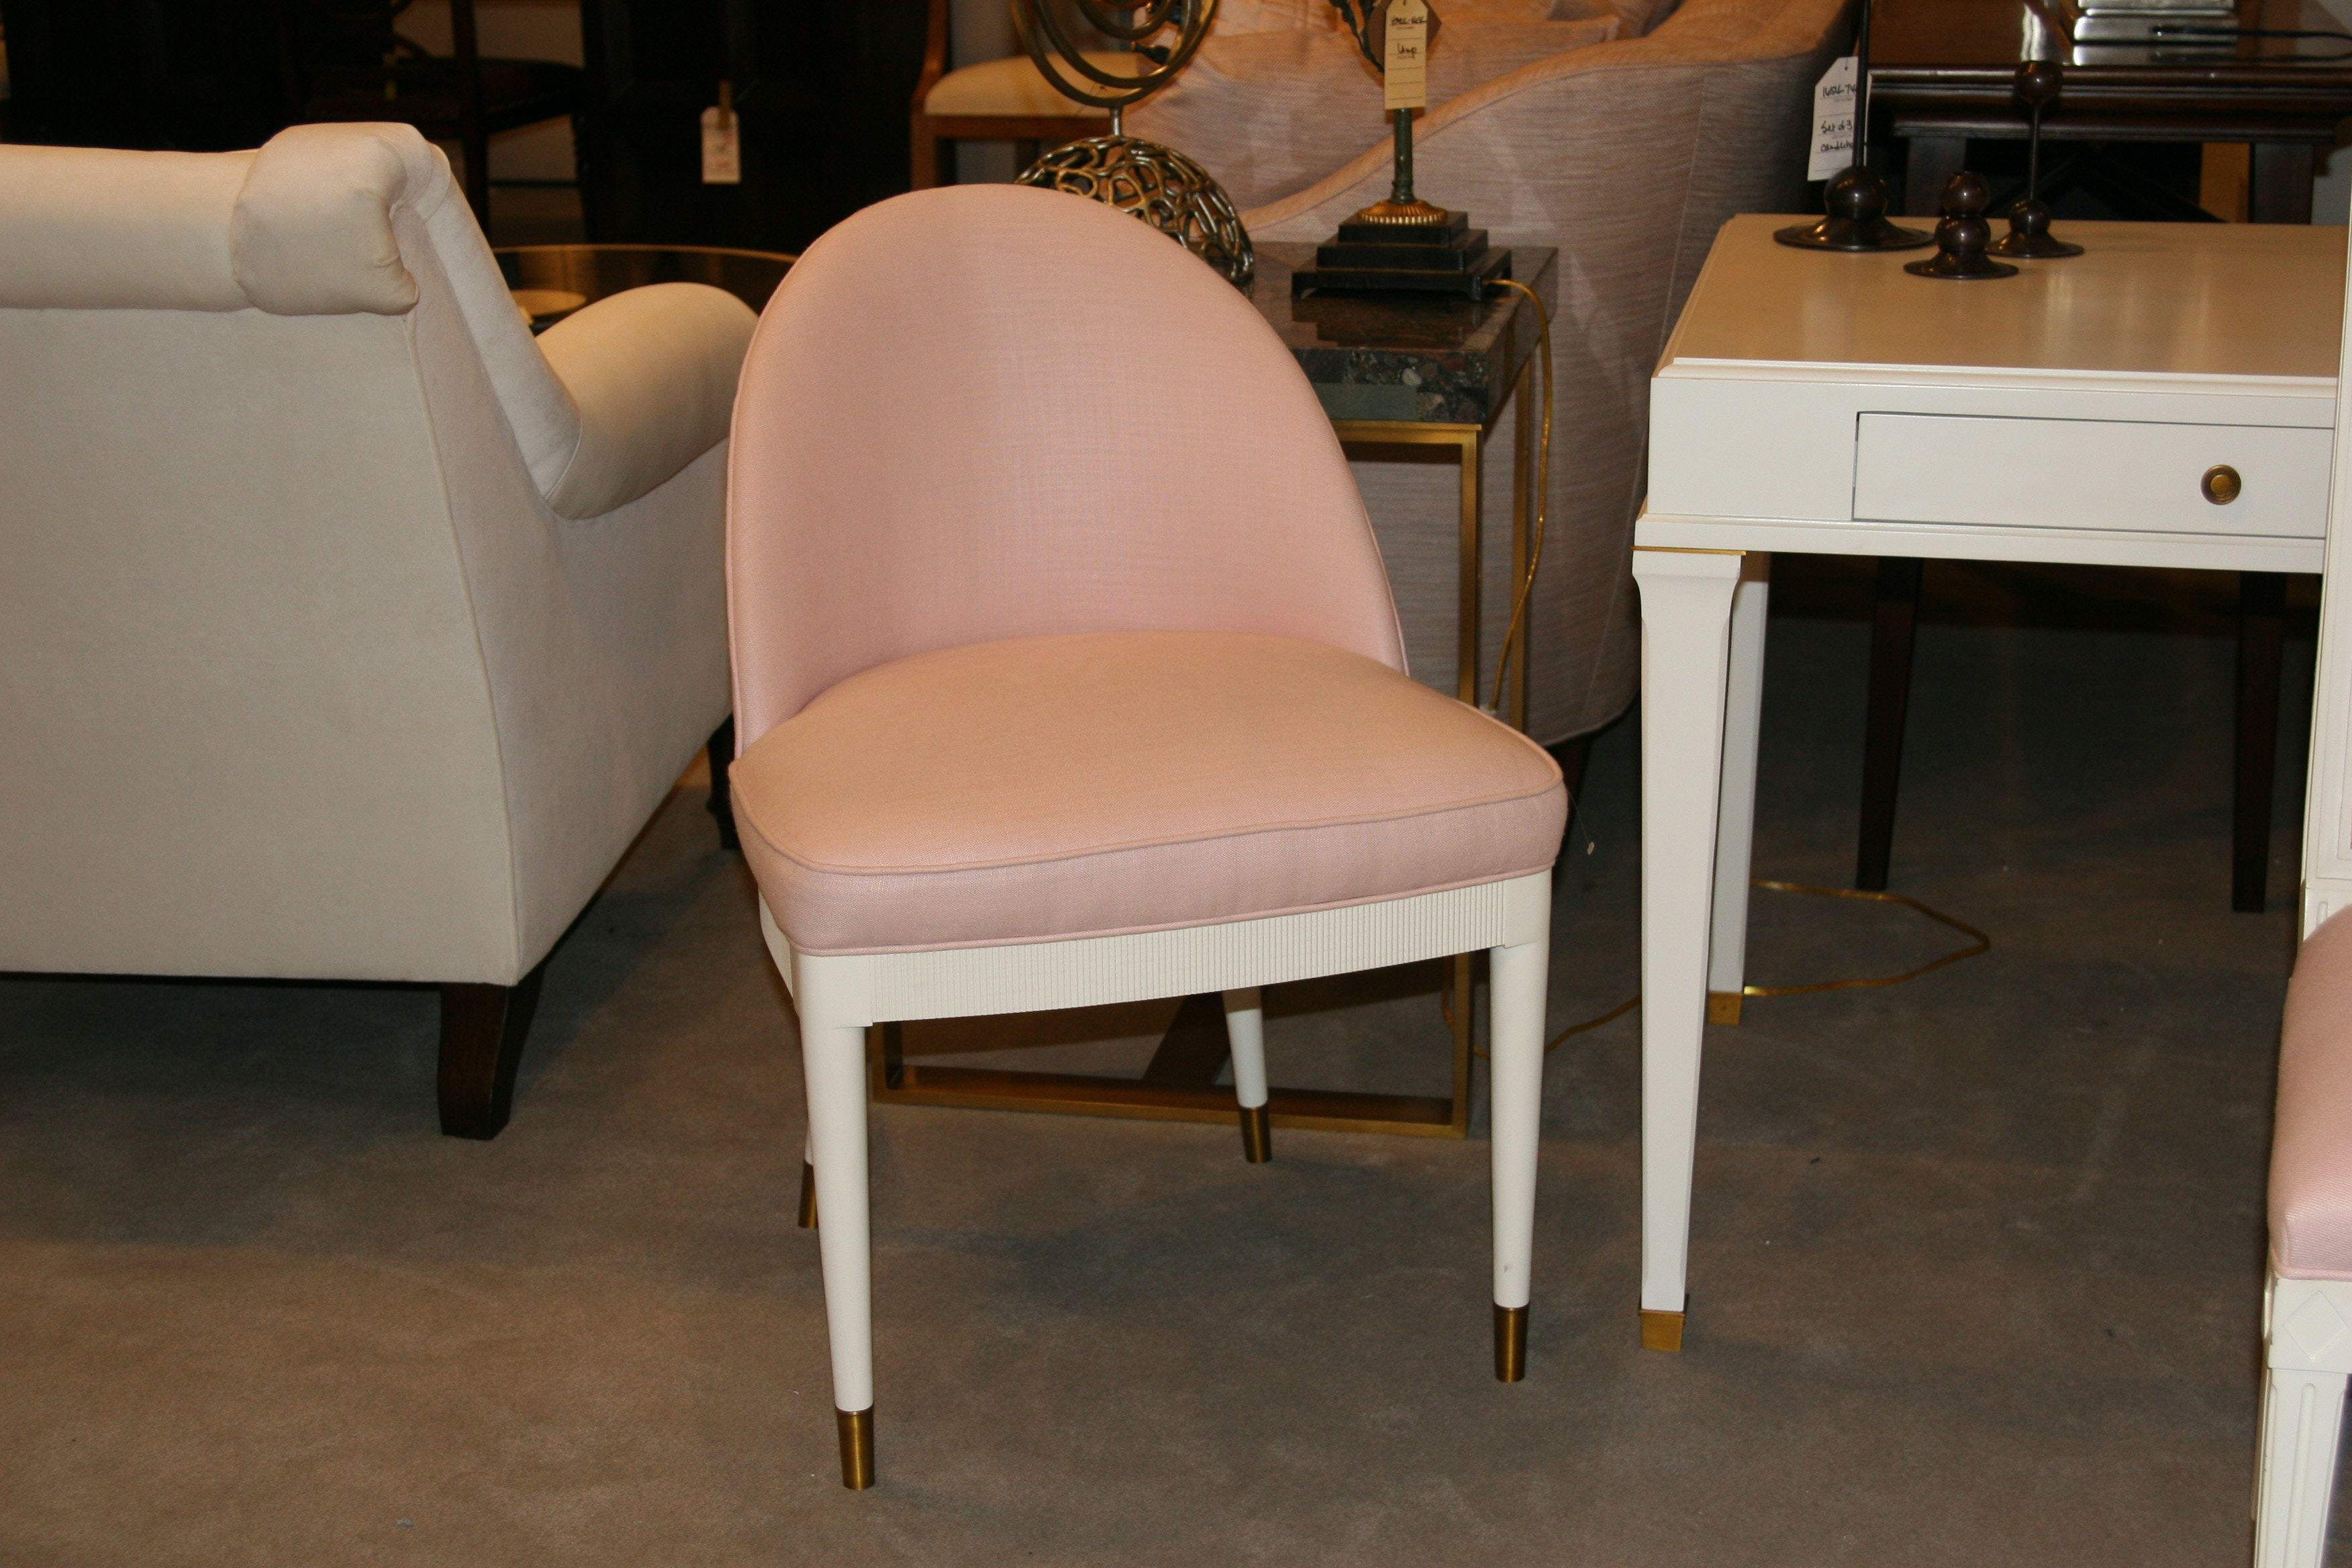 Delicieux 1650 01 1. Chair